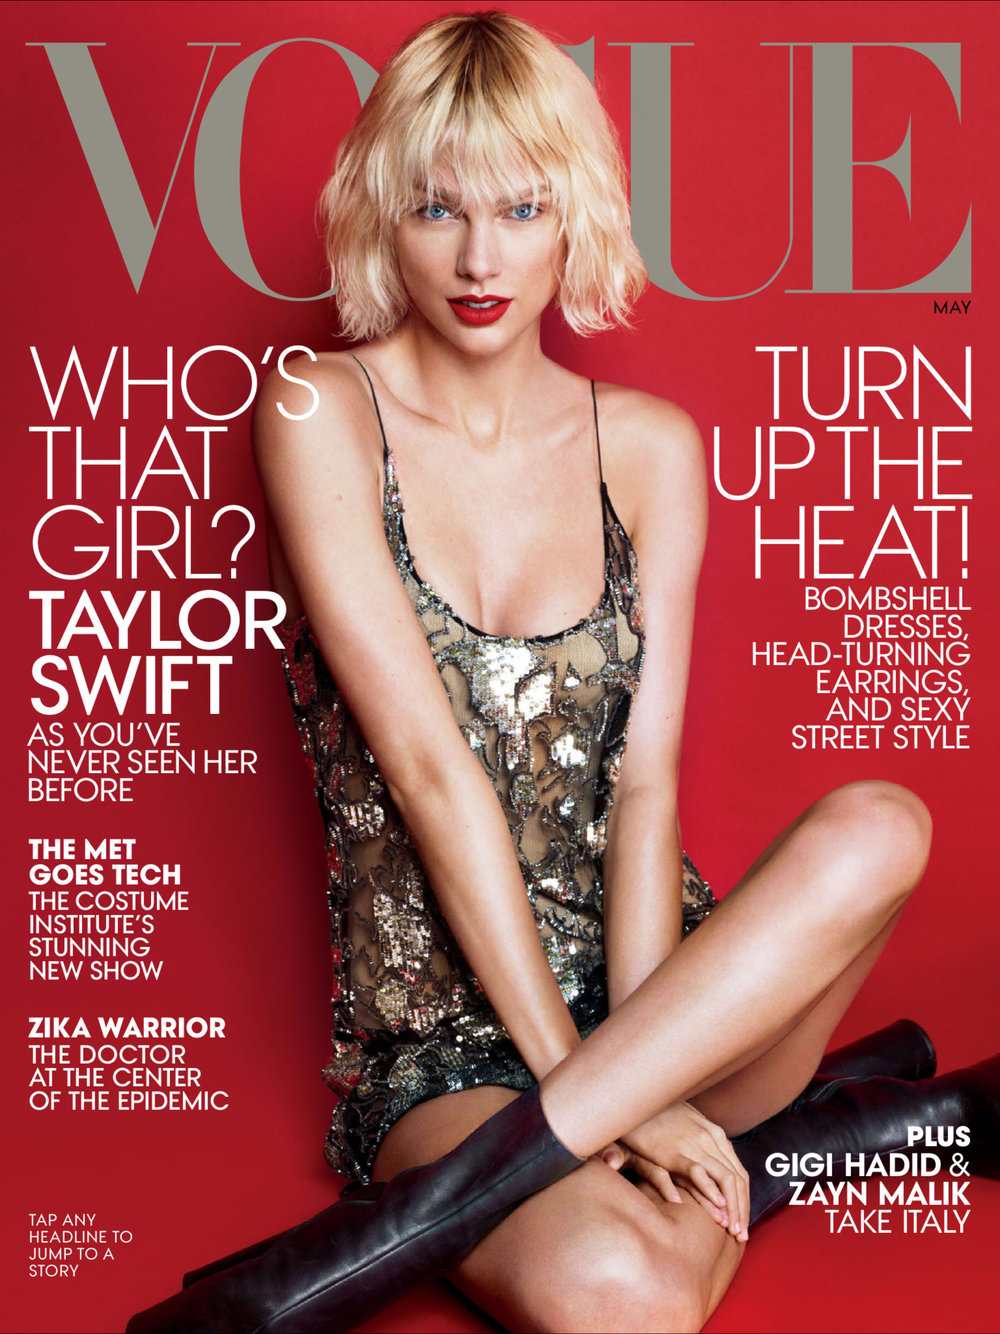 Vogue-May-2016-Cover.jpg